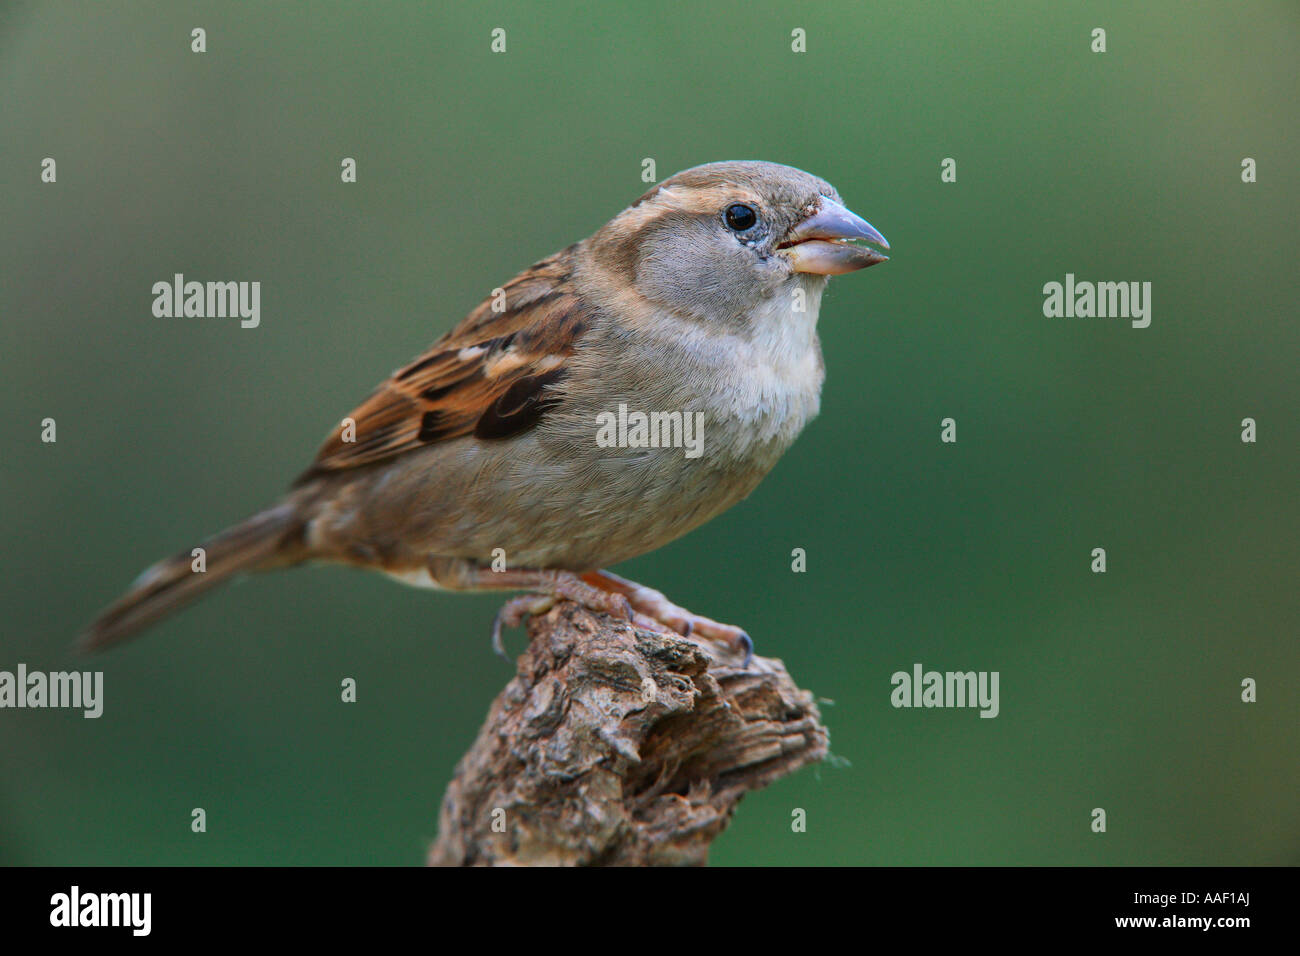 house sparrow - on branch / Passer domesticus - Stock Image